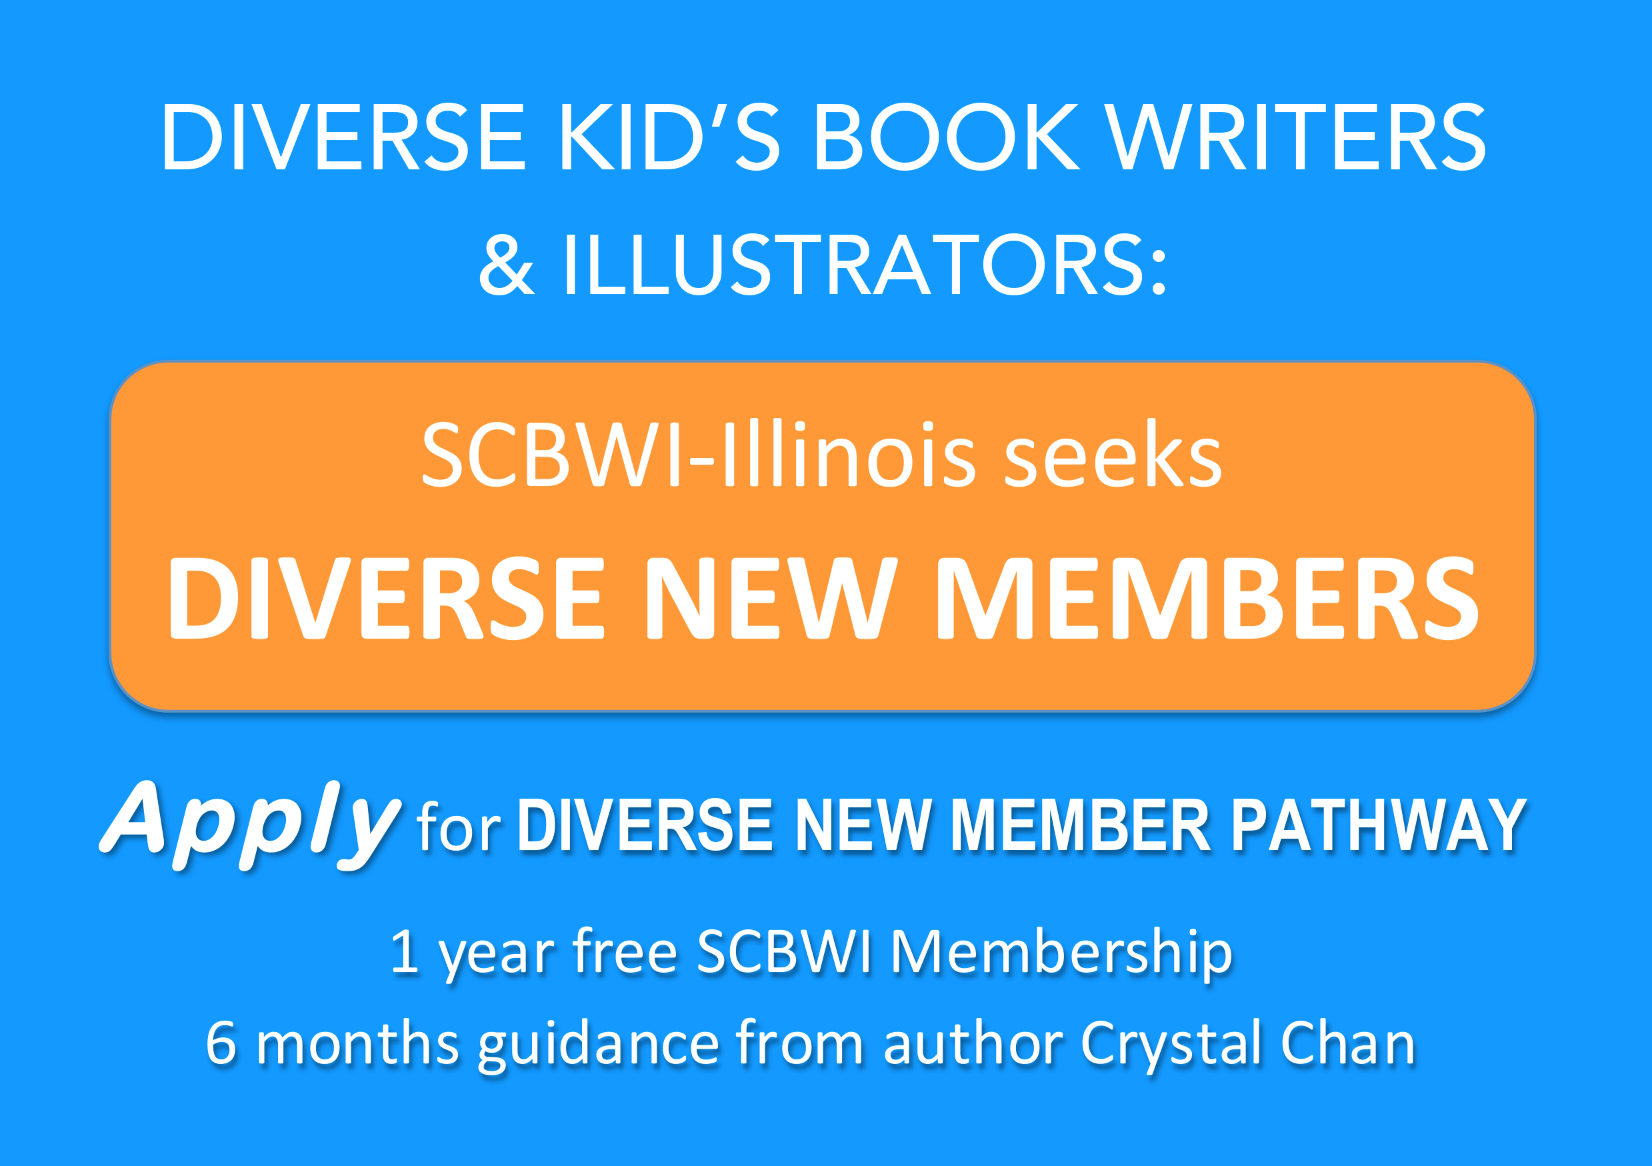 In 2017, SCBWI-Illinois is launching its Diverse New Member Pathway, intended to increase diversity among children's book creators and among members of SCBWI. Application period 2/1-3/1/2017